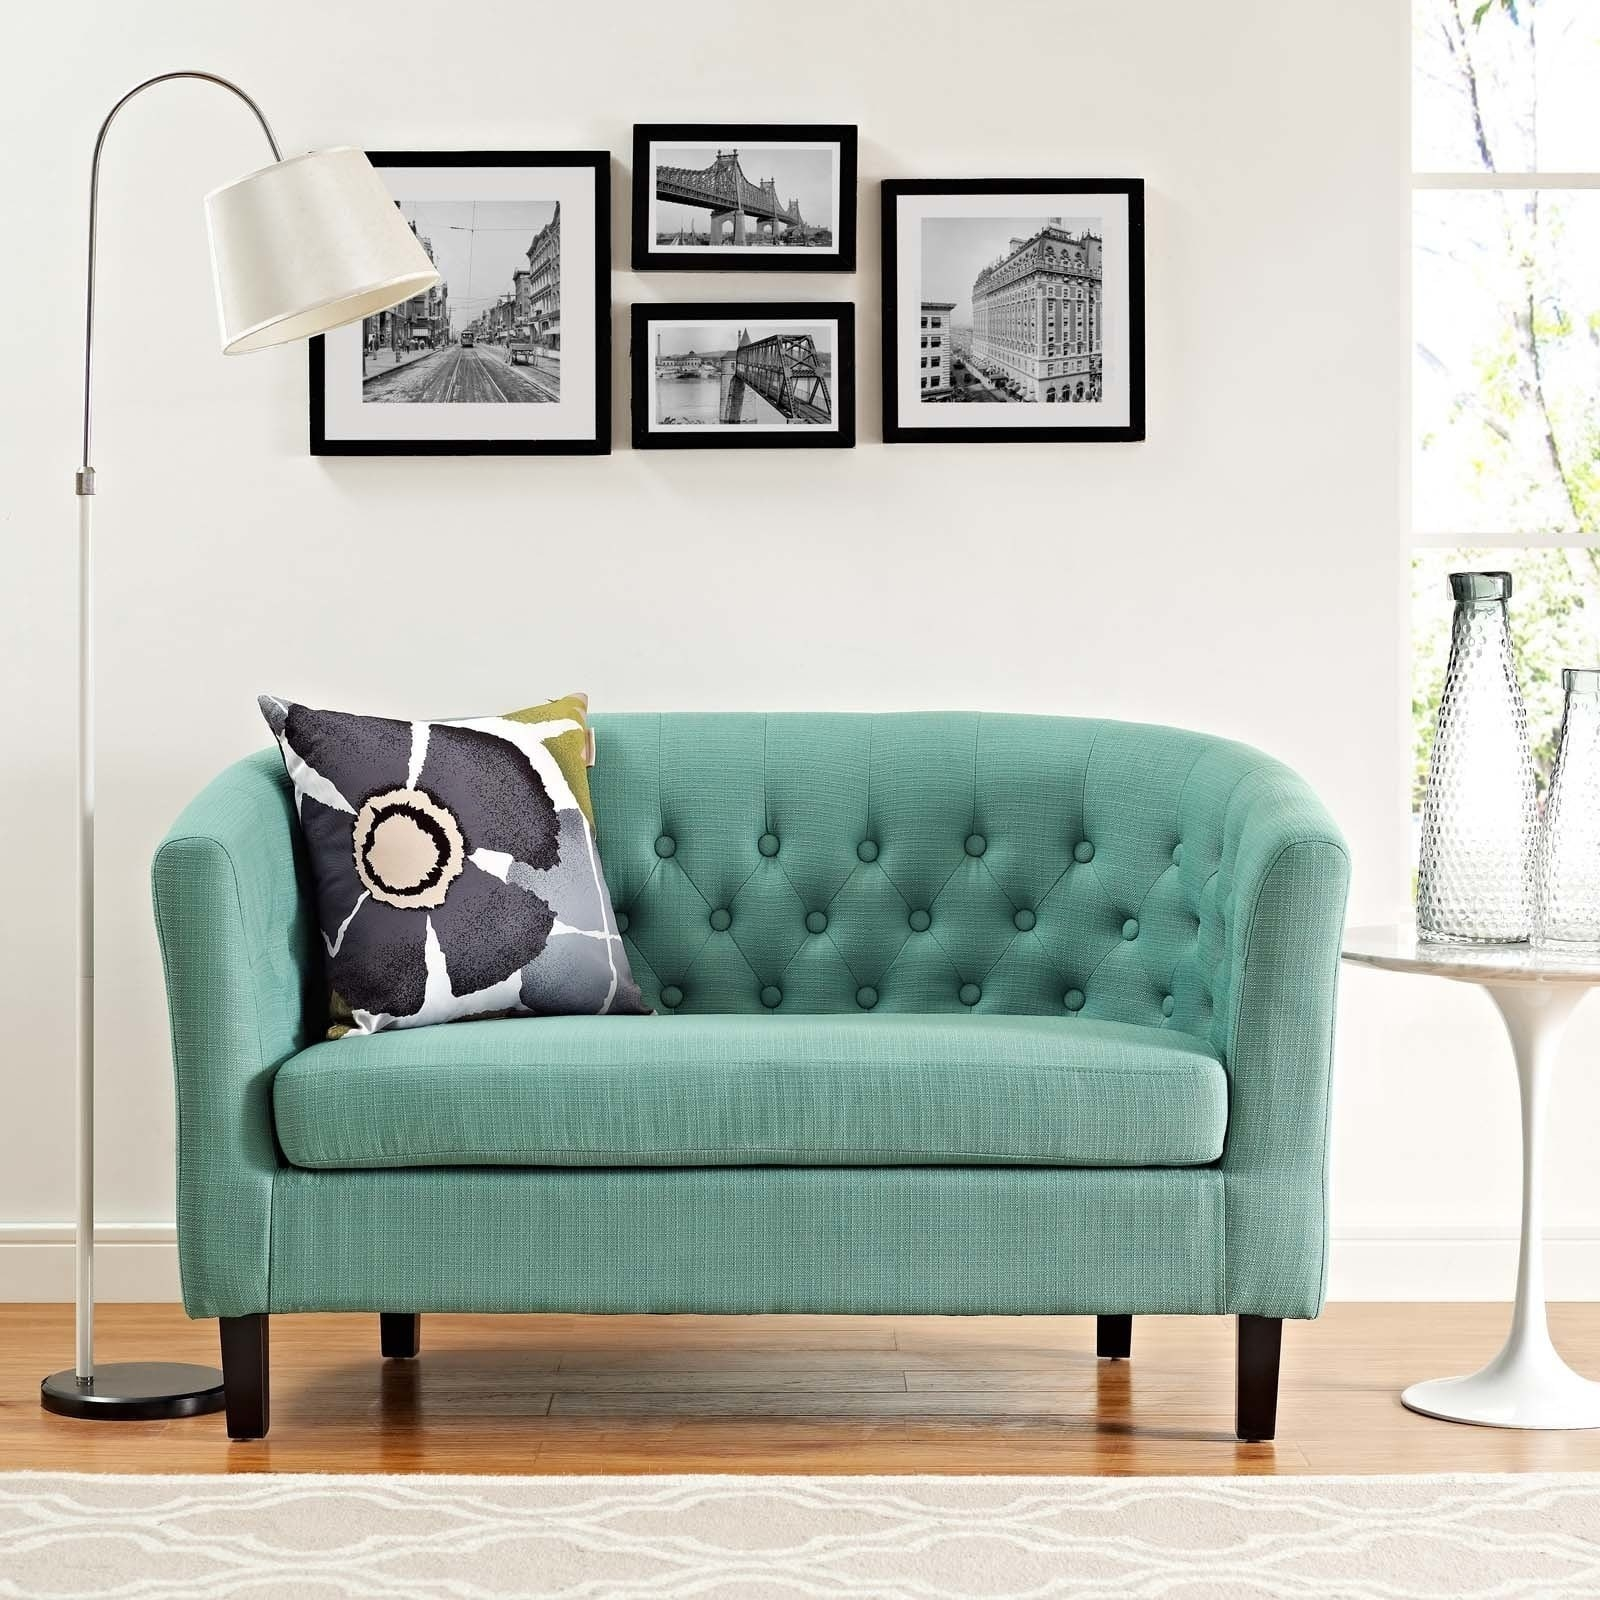 A tufted linen loveseat to add a